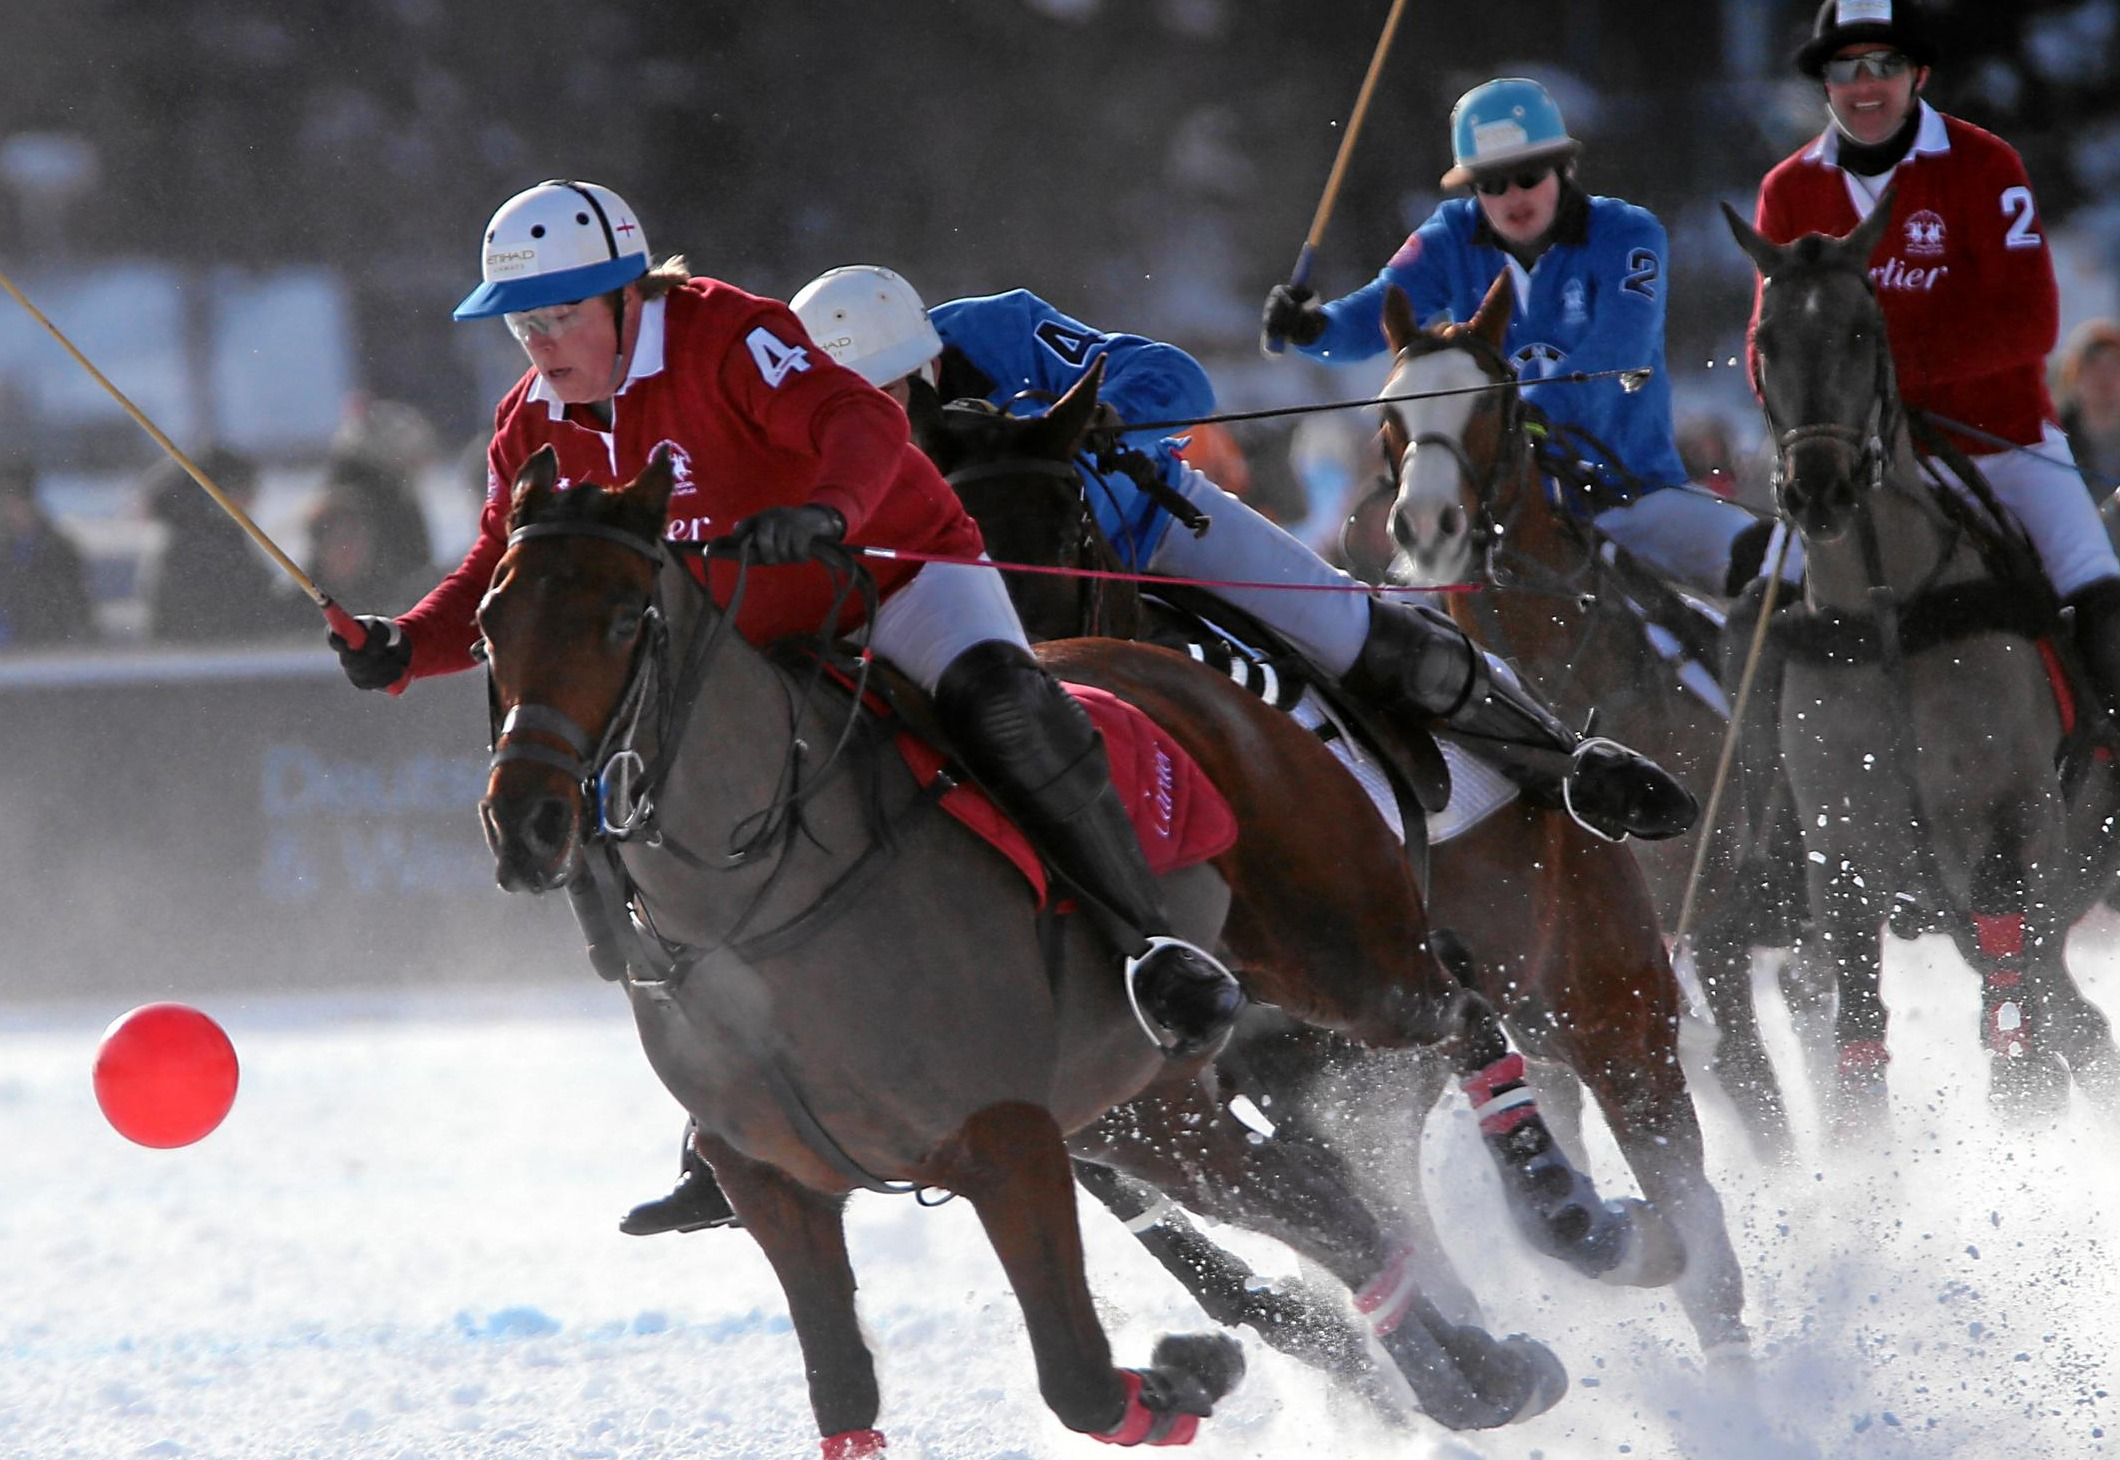 Players and horses competing at Cartier Snow Polo World Cup, St Moritz